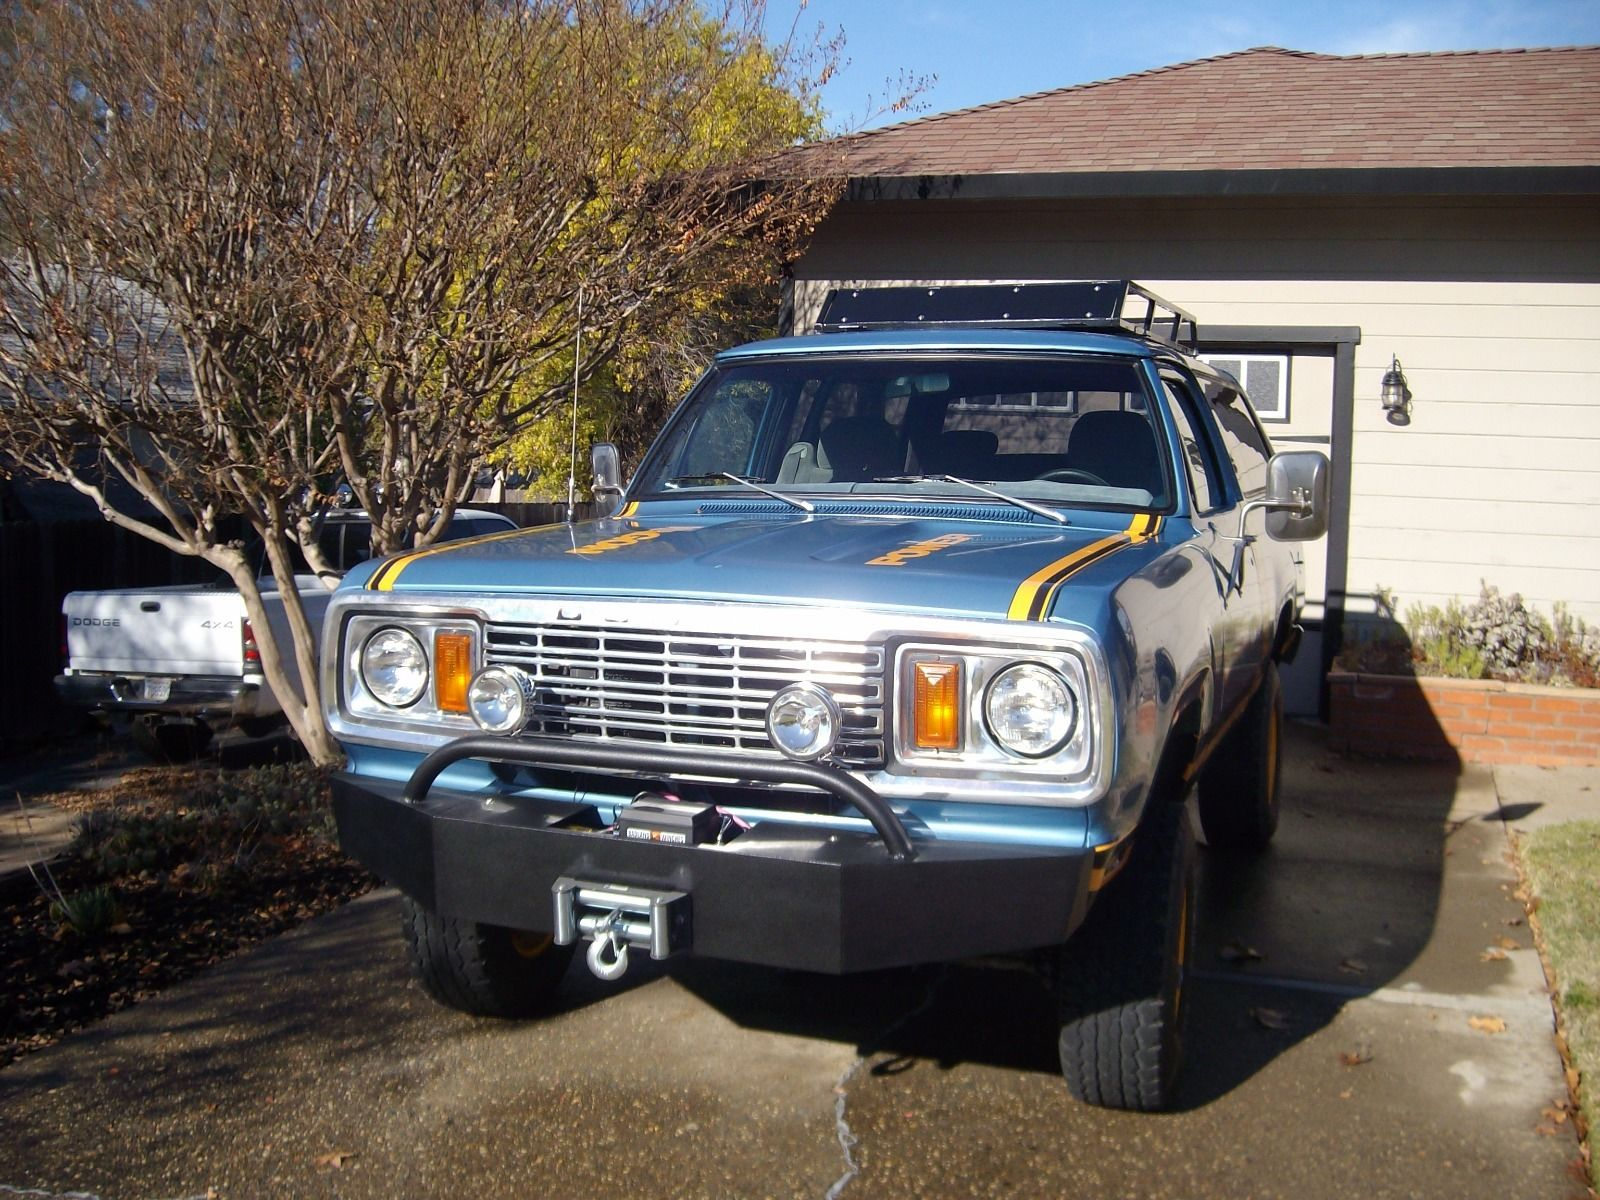 Massive bumper adds to the intimidation factor up front and houses a winch